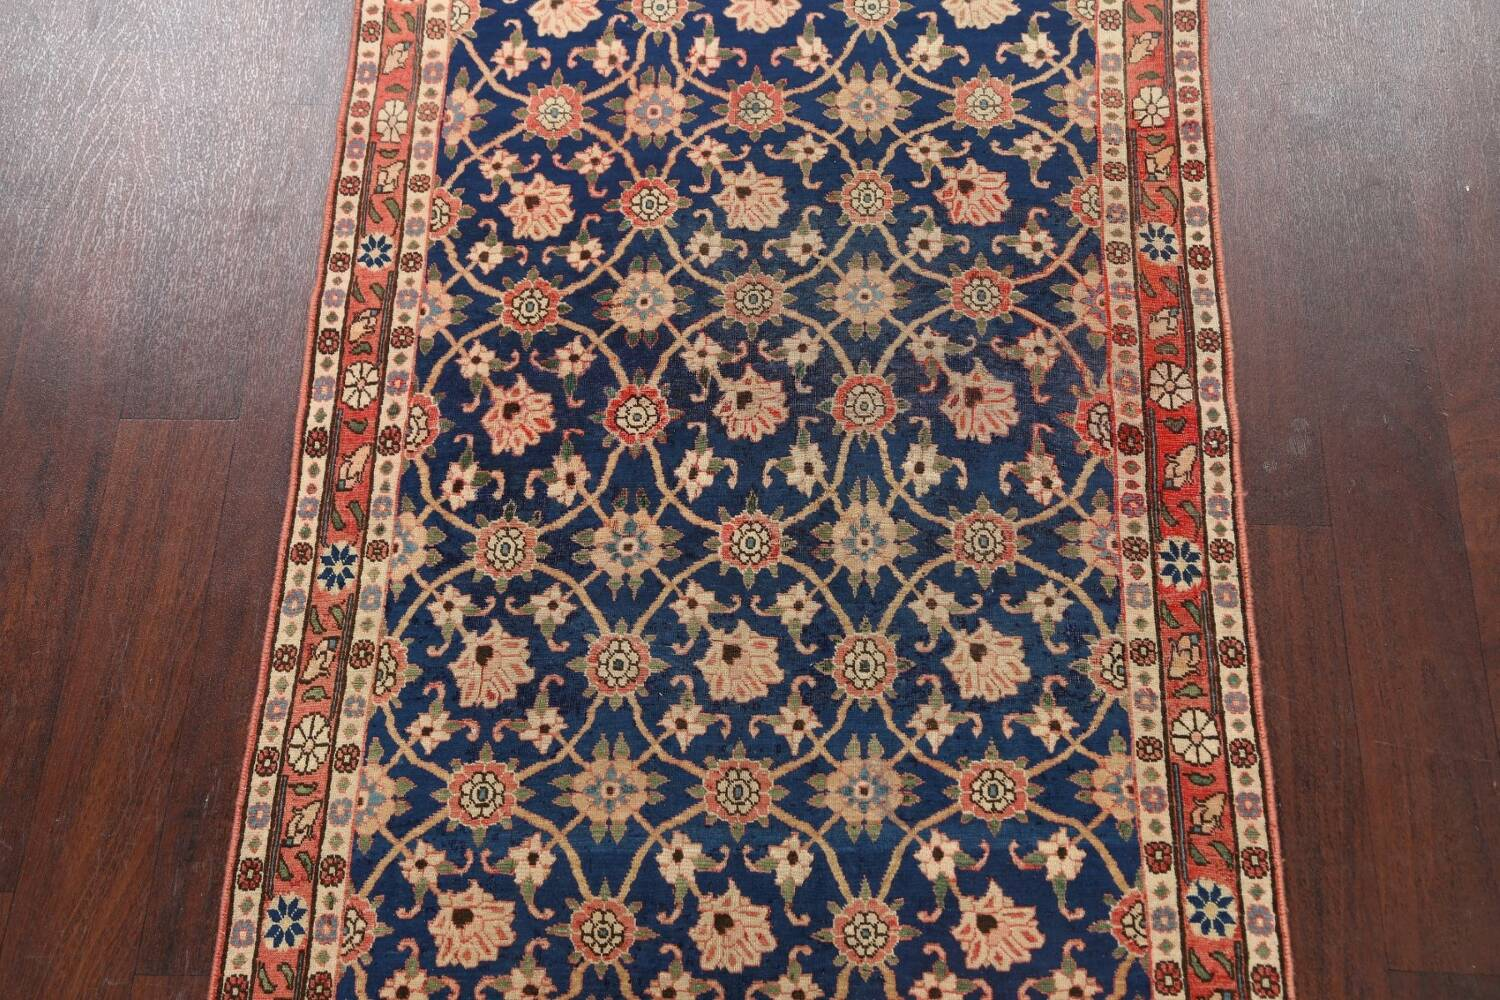 Antique Vegetable Dye Isfahan Persian Area Rug 3x5 image 3